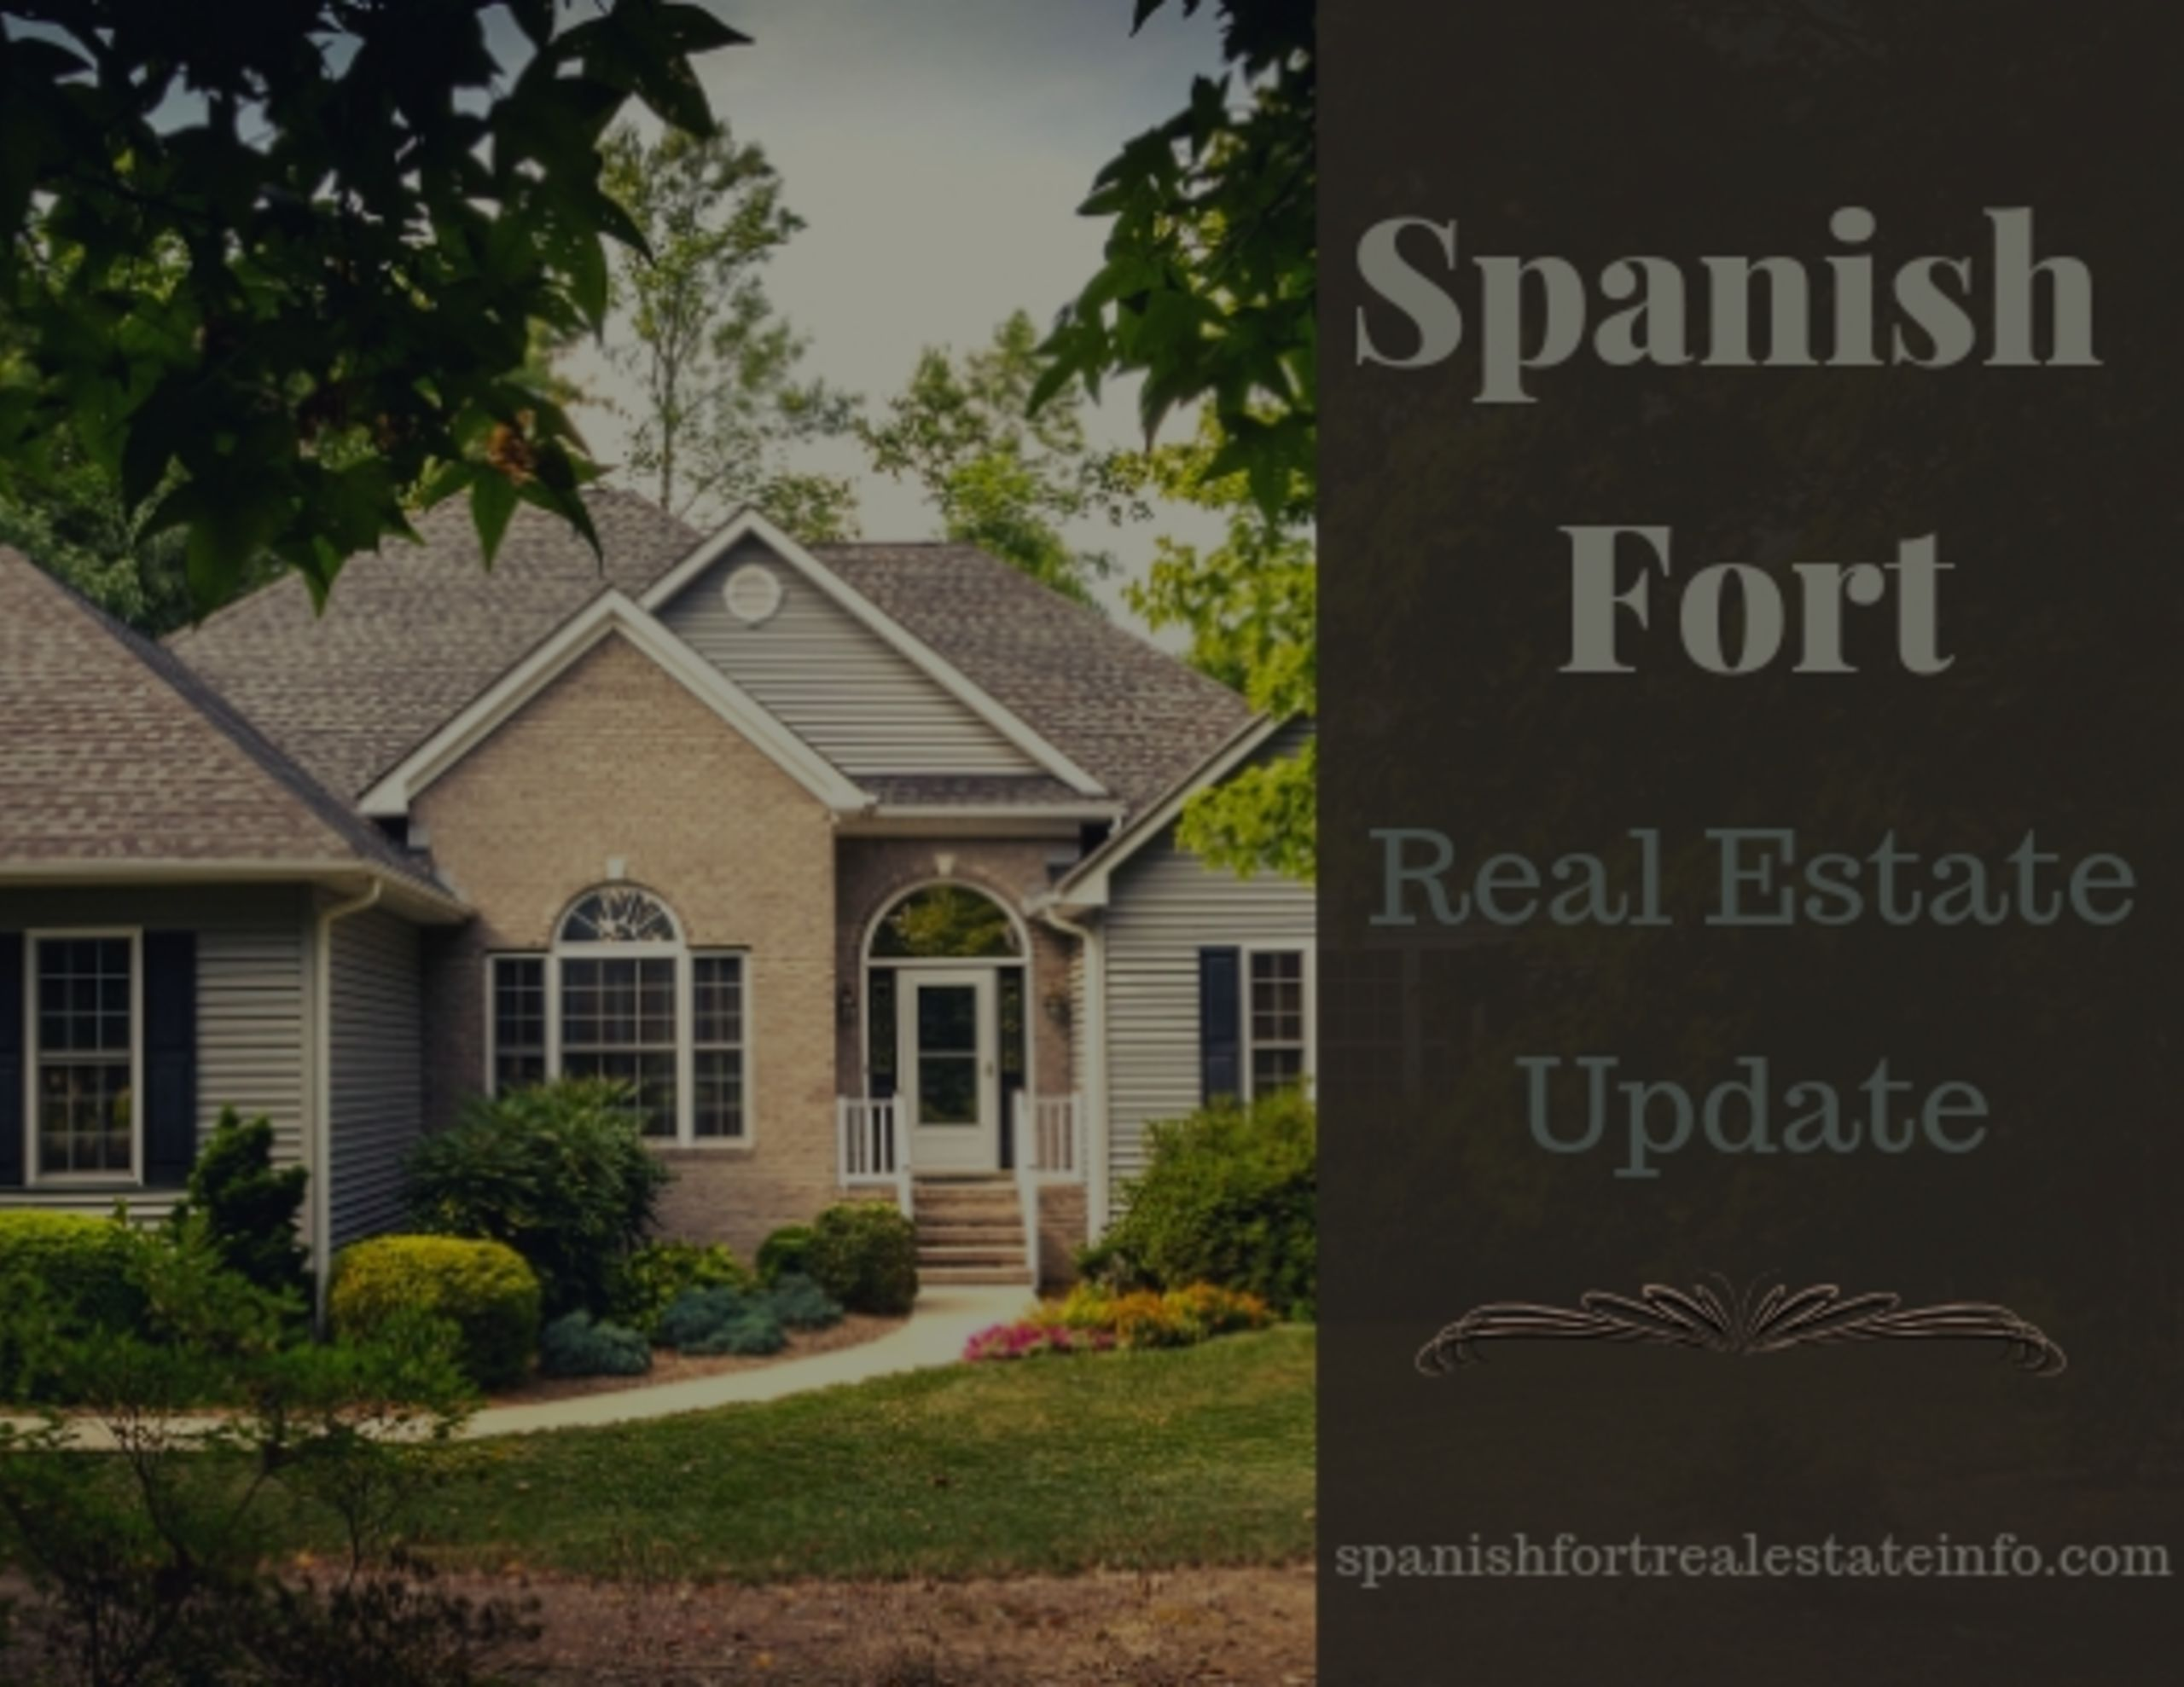 Spanish Fort Real Estate Update – September 2019